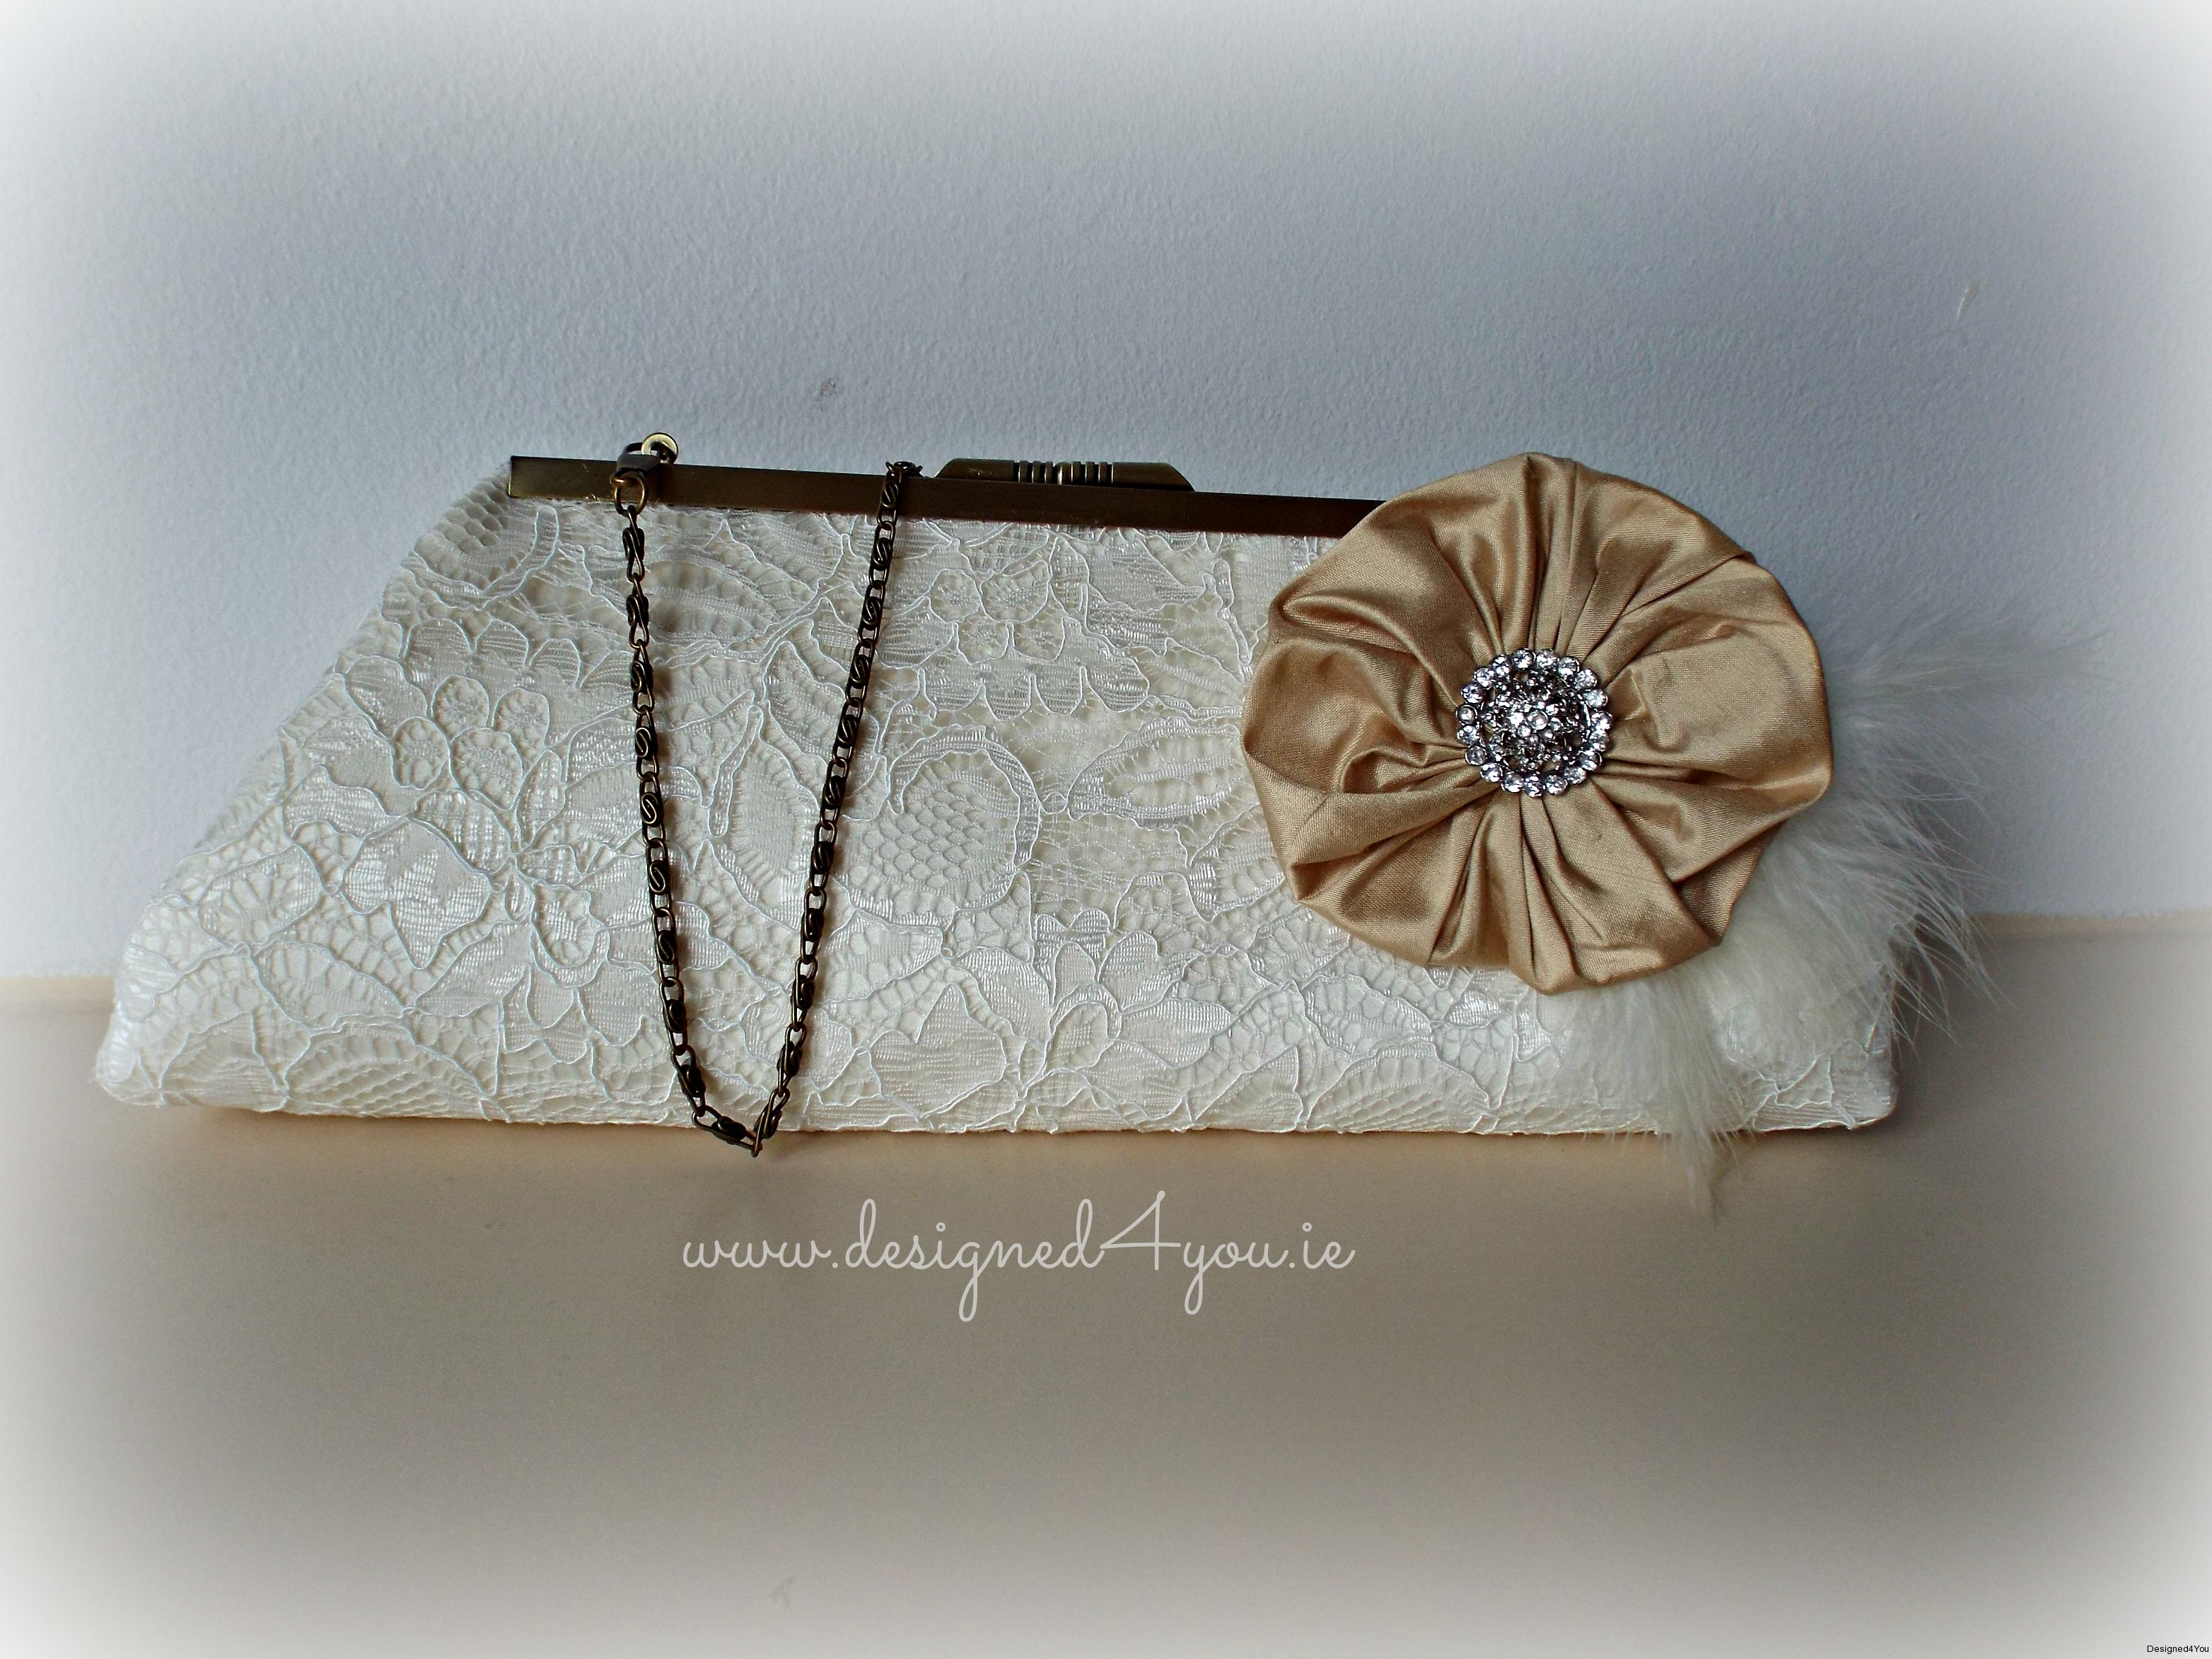 Venus Lace with Brooch